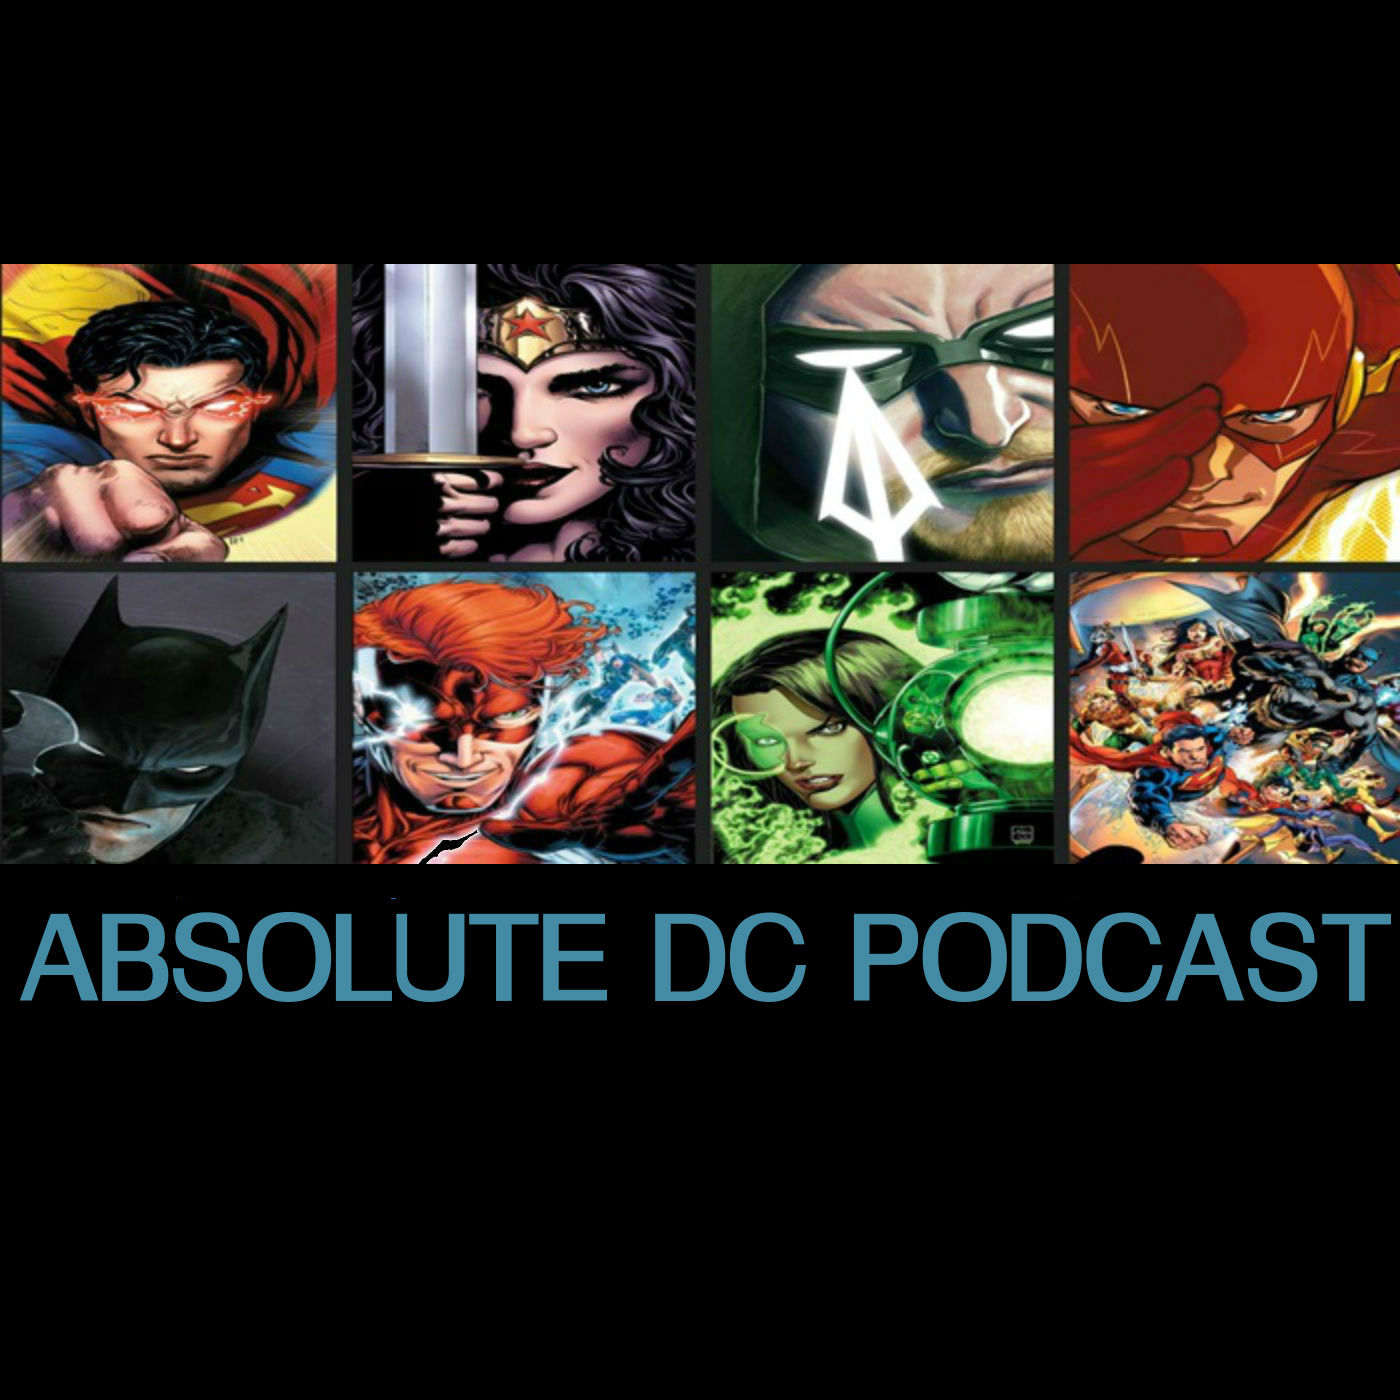 Absolute DC Podcast